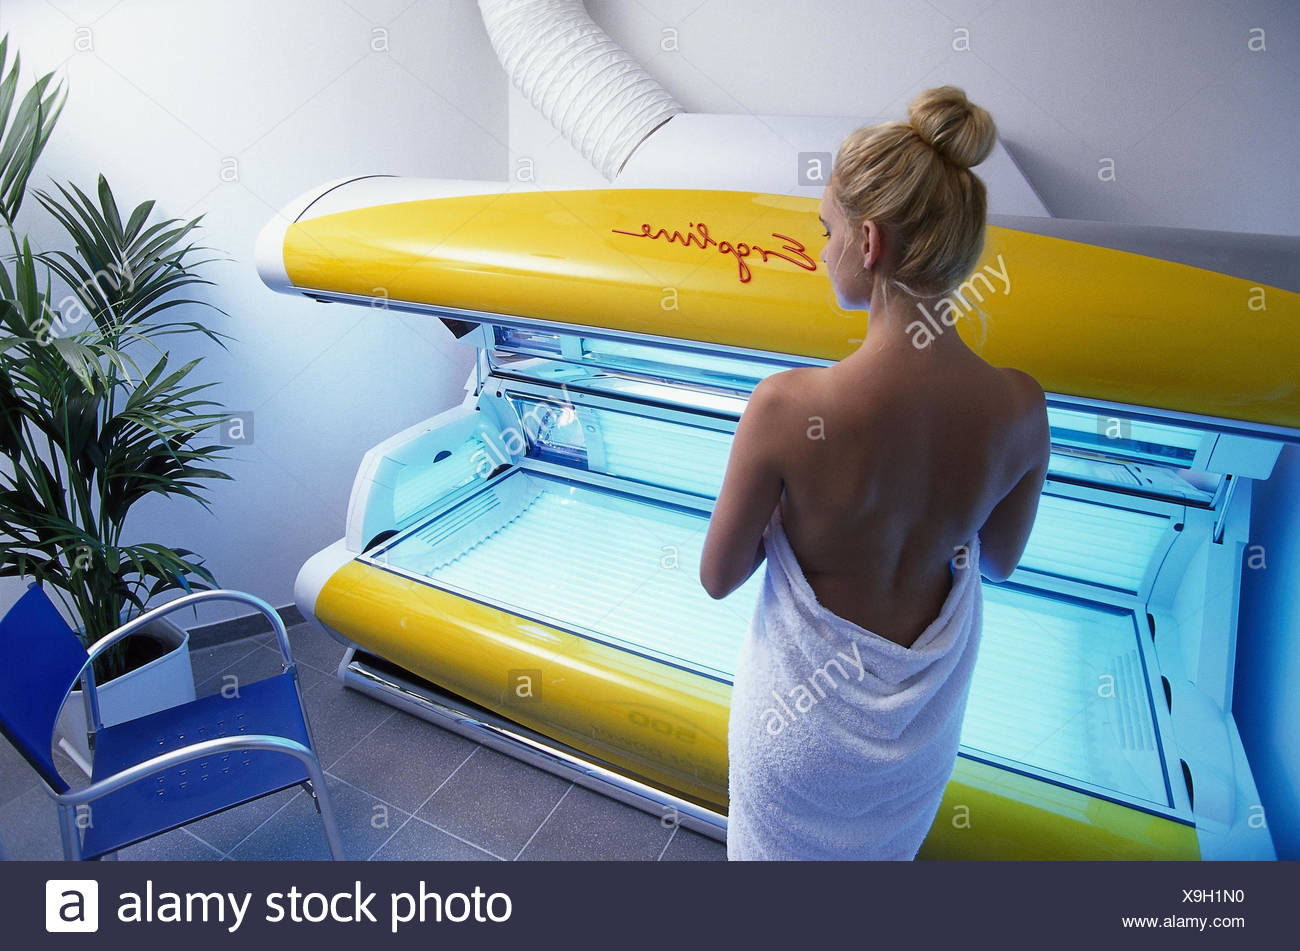 Solarium, woman, young, back view inside, whole body irradiation, solar studio, Bräunungsliege, UVA, UVB, ultraviolet, cosmetics, UV irradiation, irradiation, get brown, beauty, vanity - Stock Image